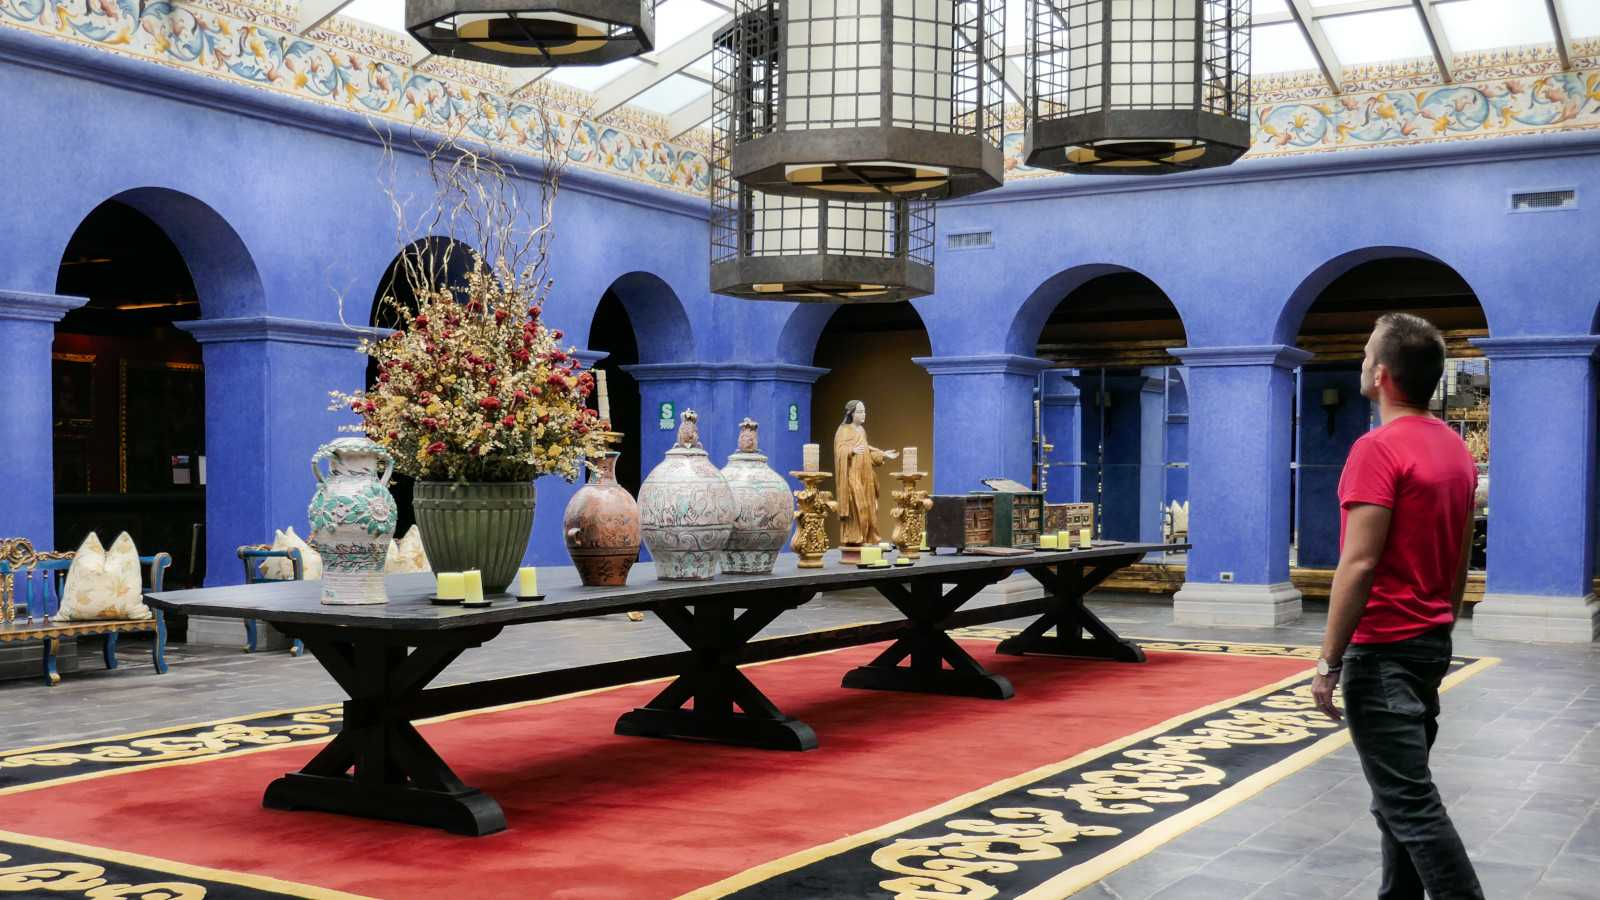 Palacio Del Inka is  a stunning luxury hotel in the heart of Cusco